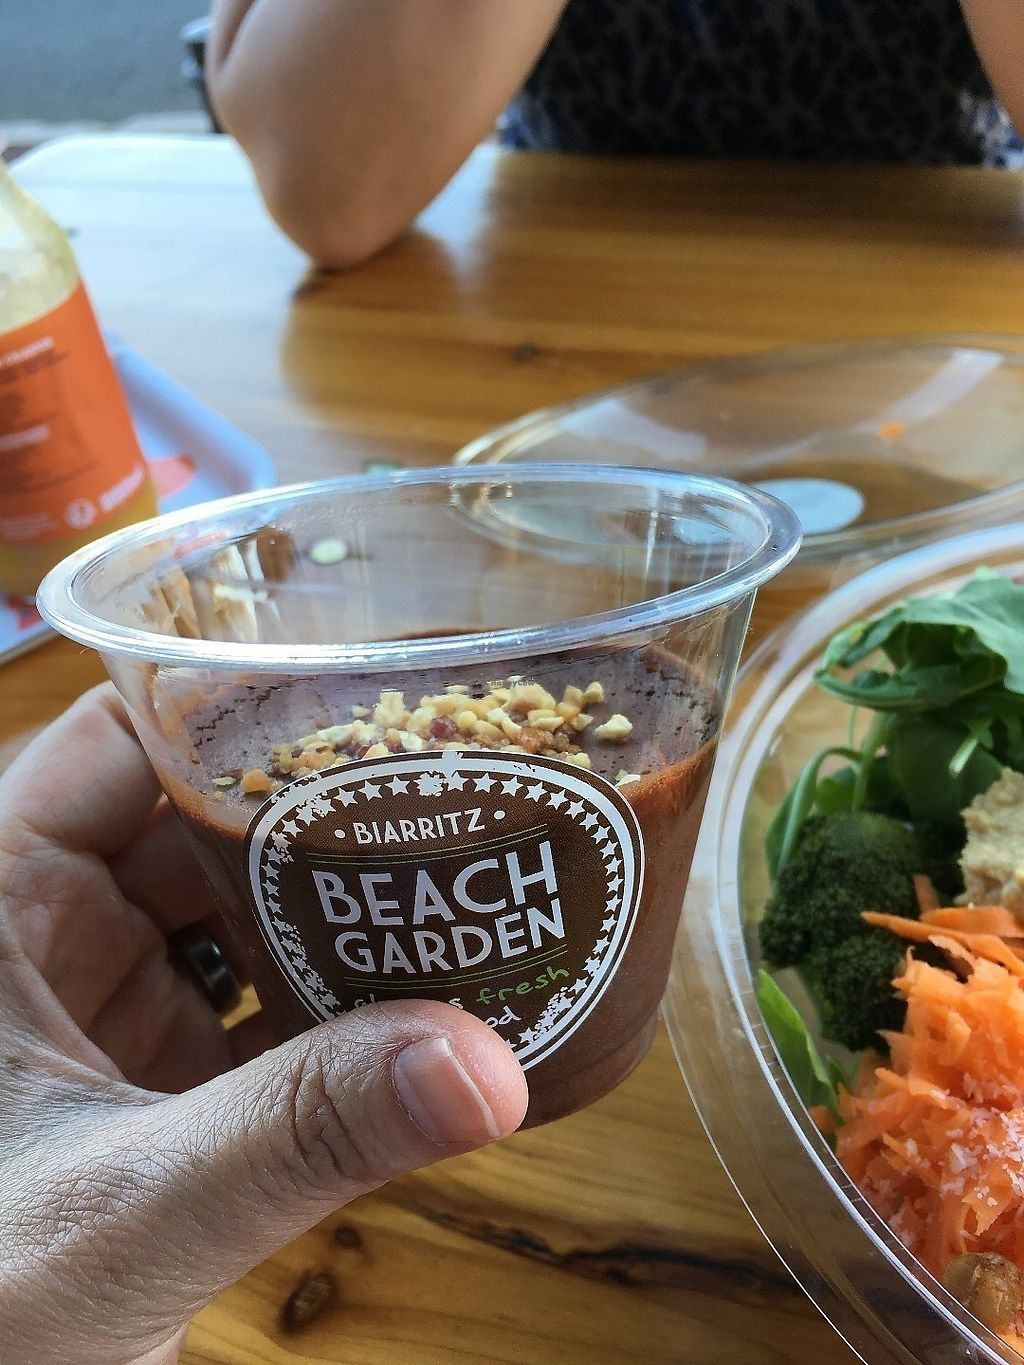 """Photo of Beach Garden  by <a href=""""/members/profile/vegan%20frog"""">vegan frog</a> <br/>Vegan chocolate mousse <br/> June 19, 2017  - <a href='/contact/abuse/image/75151/271084'>Report</a>"""